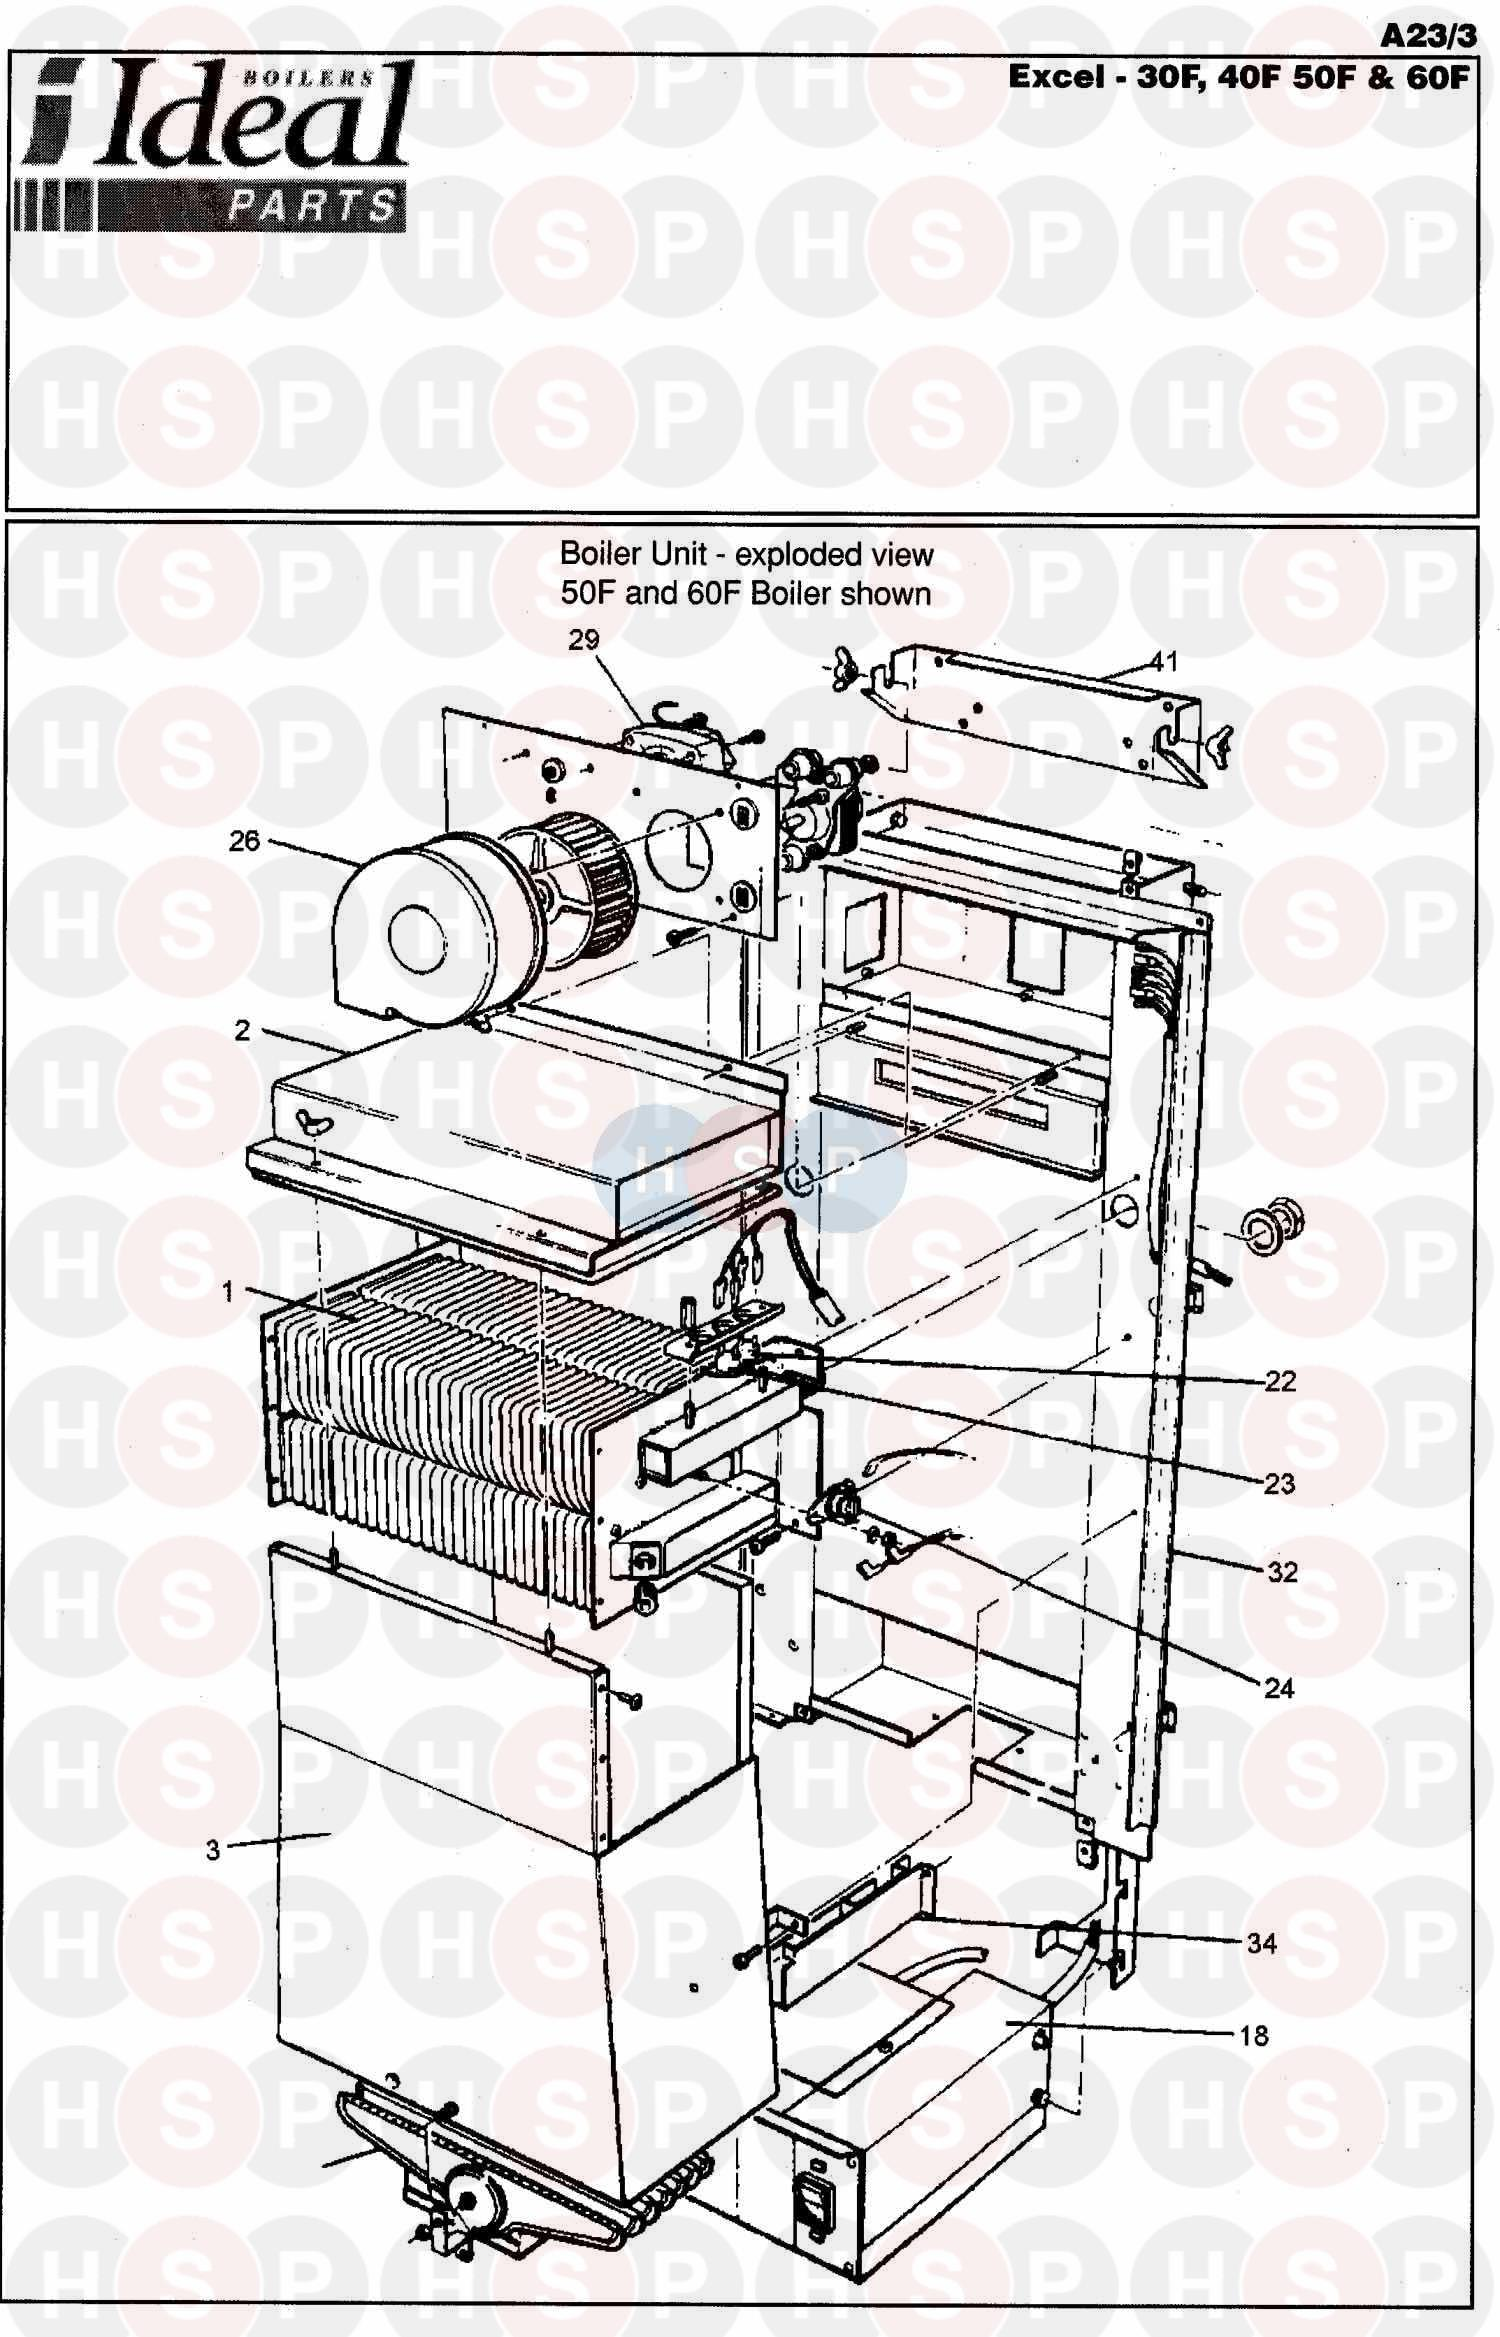 ideal excel 60f appliance diagram  boiler assembly 1